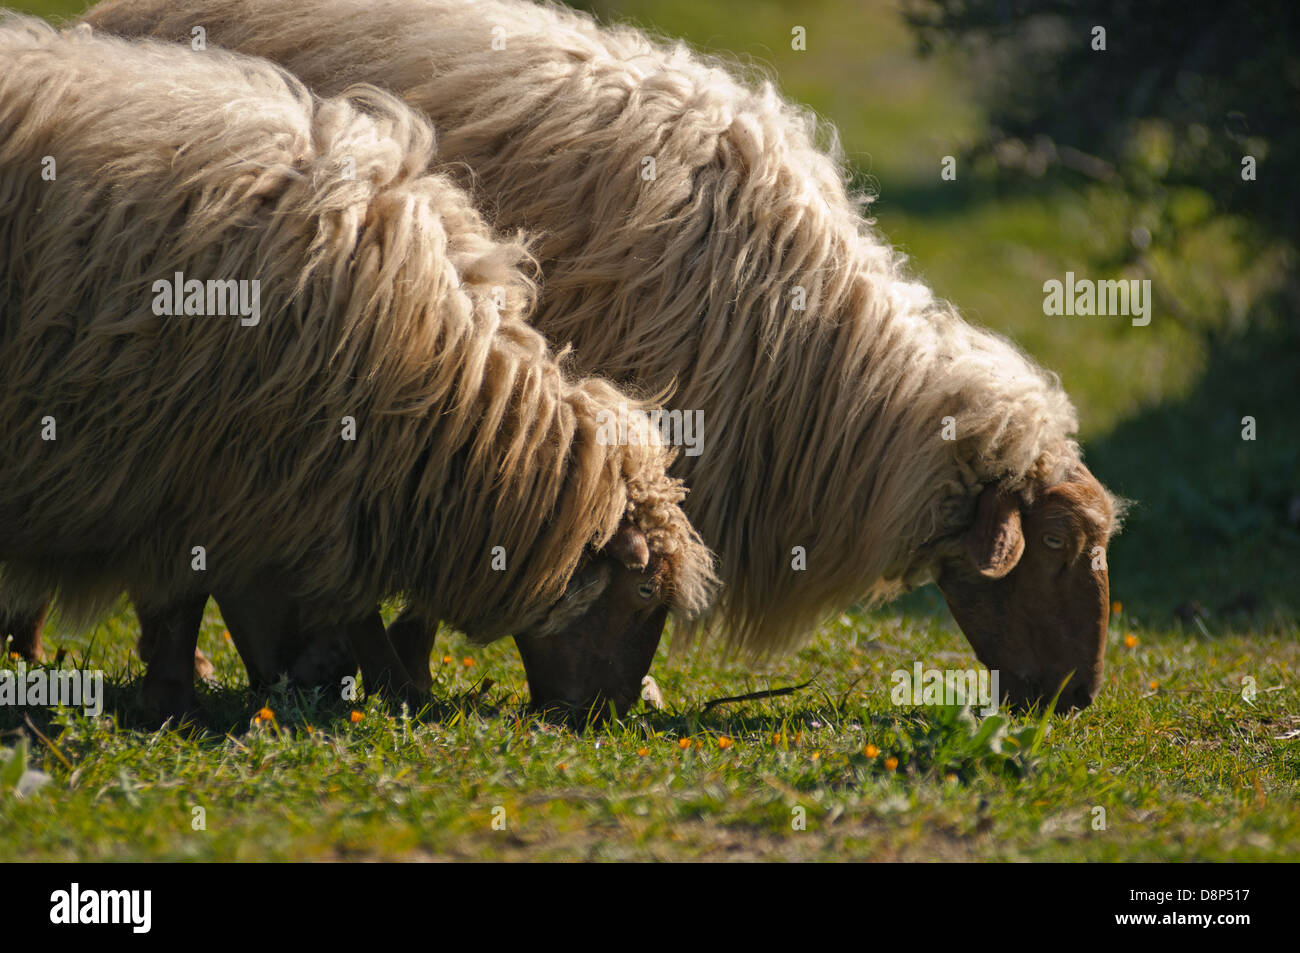 Two sheep grazing side by side (Greece) Stock Photo